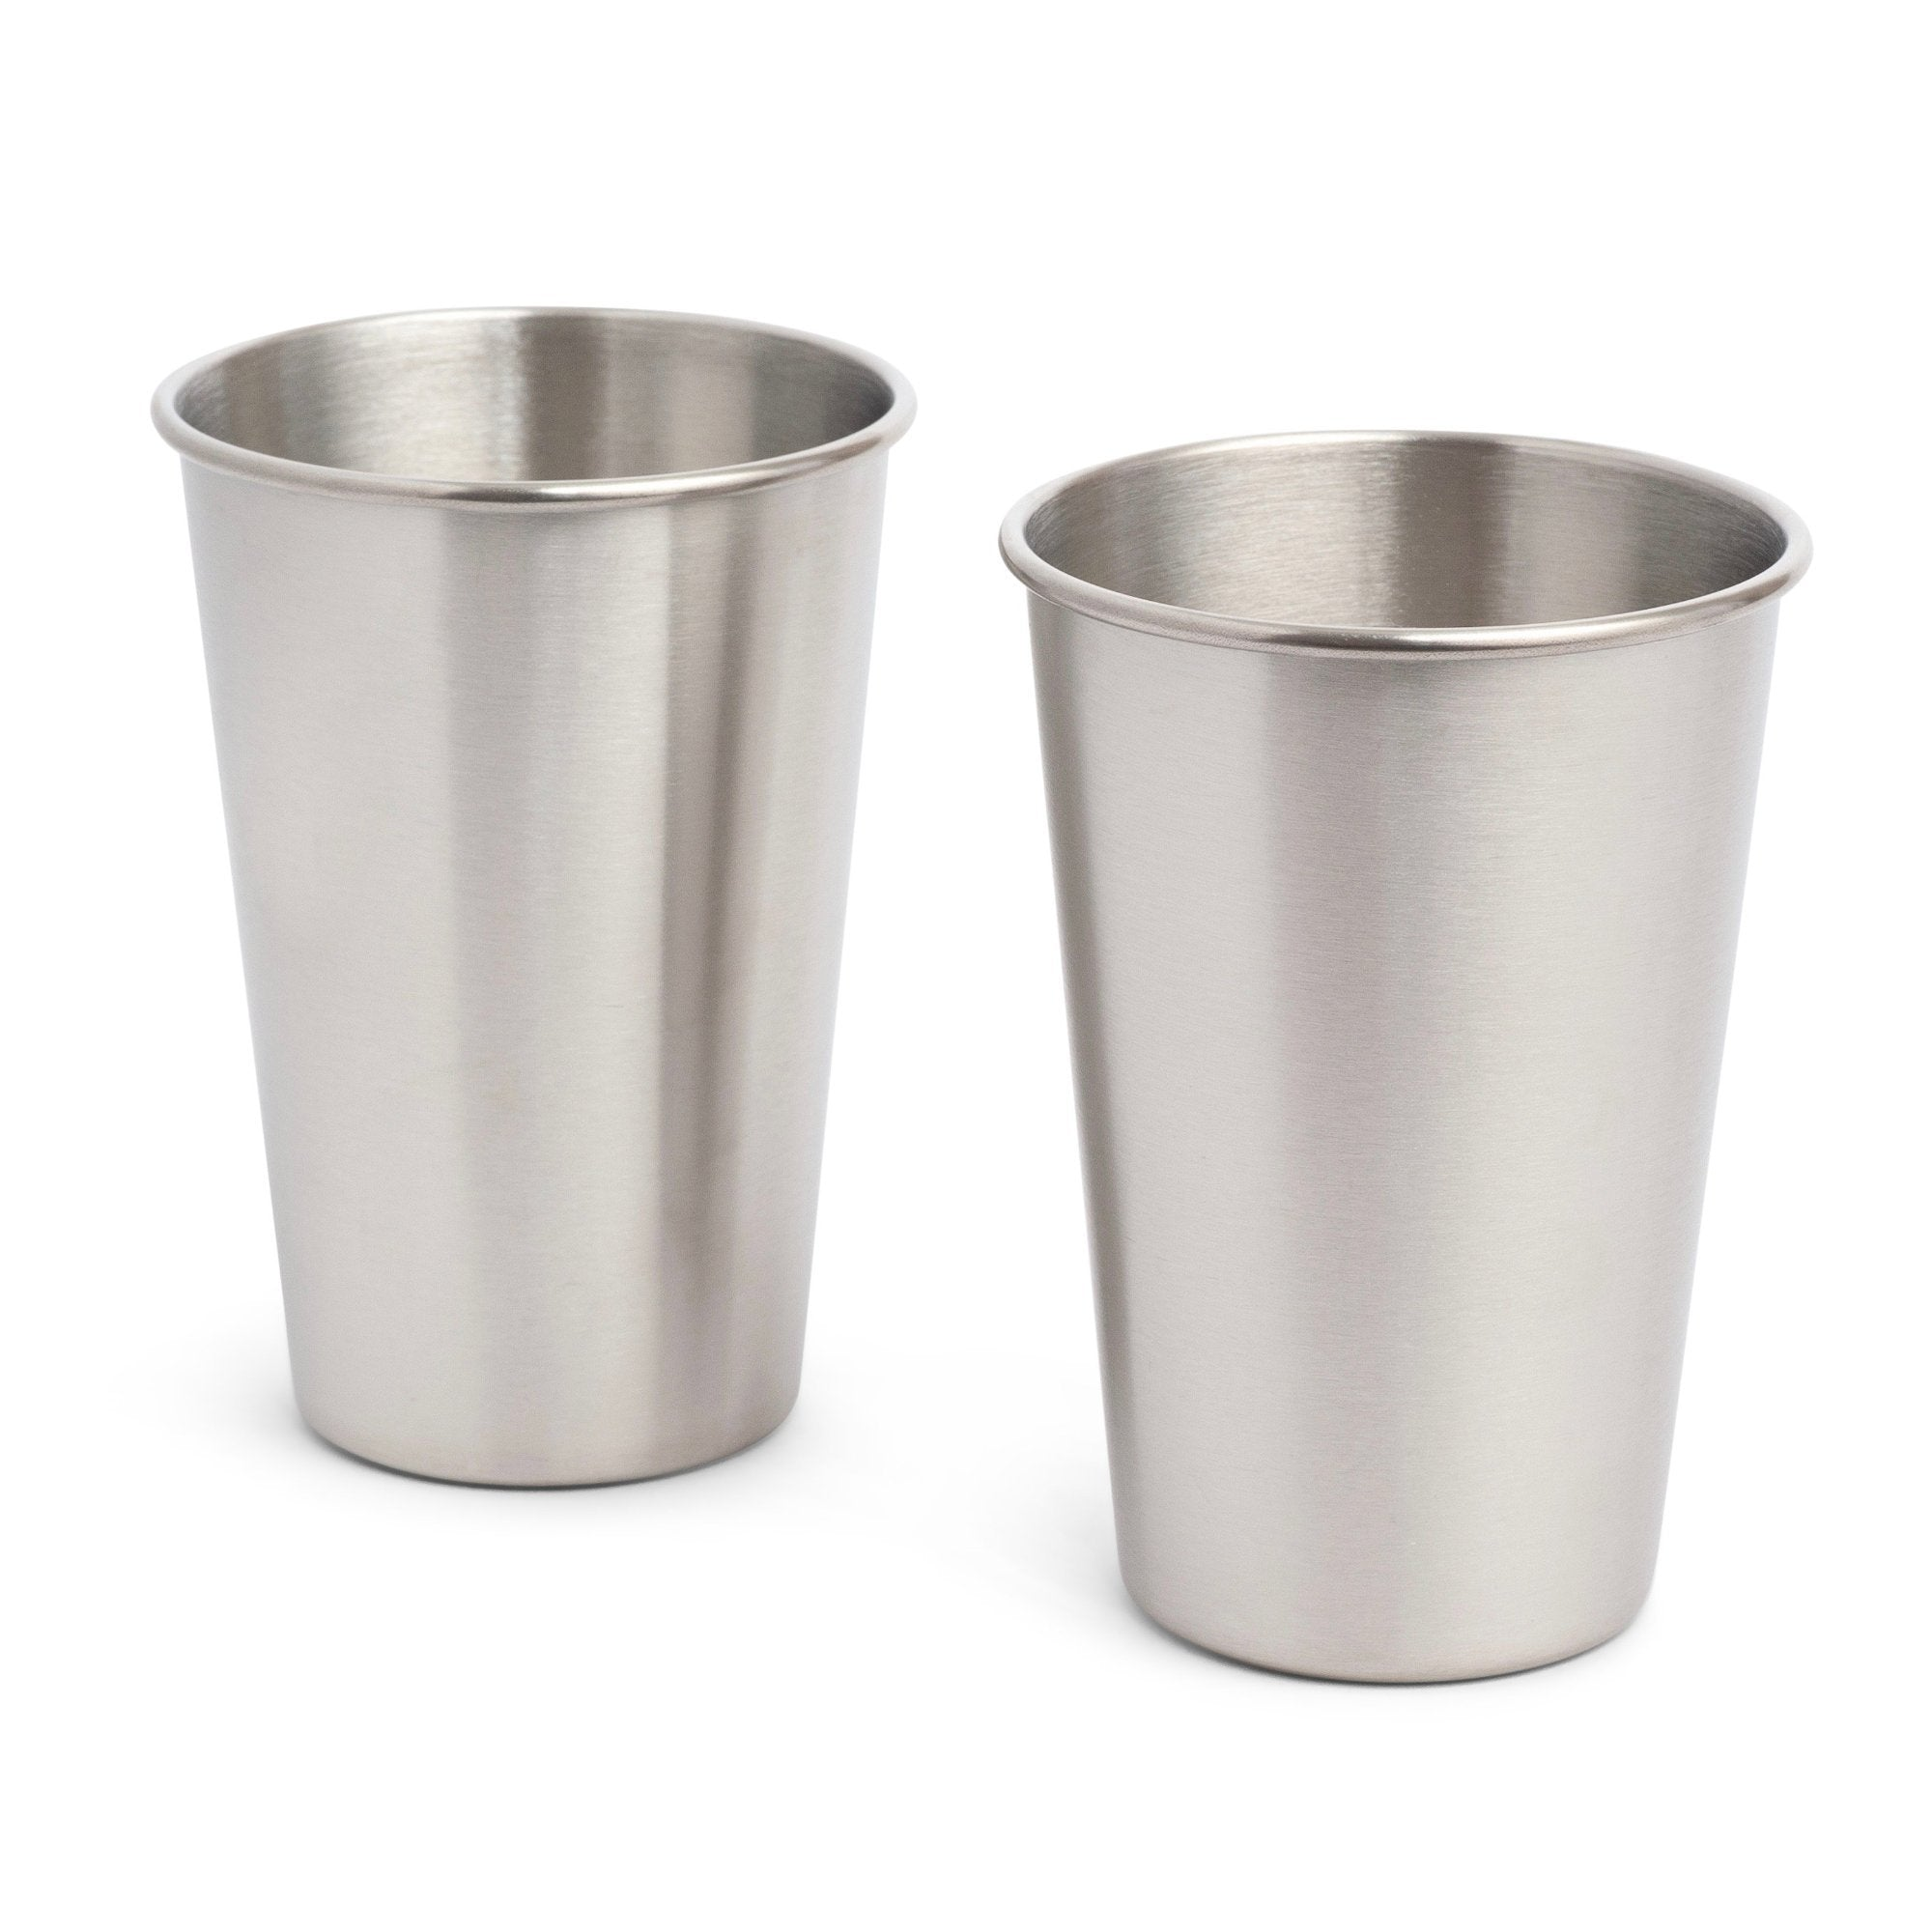 500ml Stainless steel cup - 2 pack cup Elephant Box